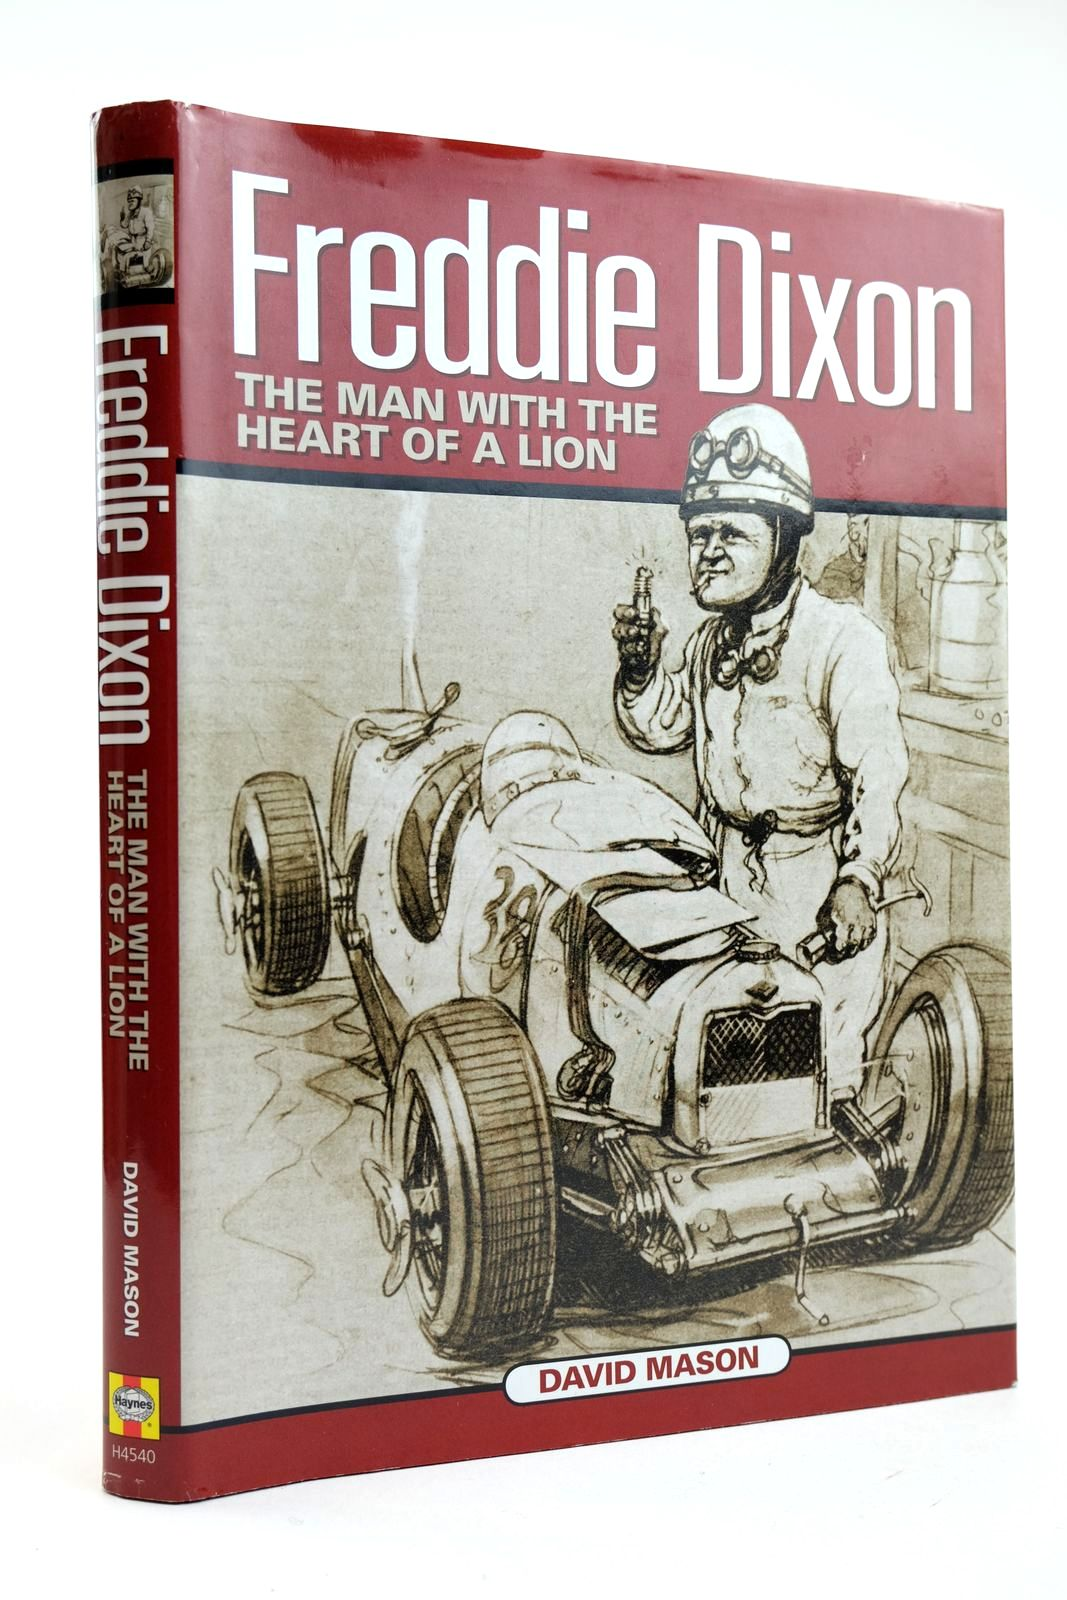 Photo of FREDDIE DIXON THE MAN WITH THE HEART OF A LION